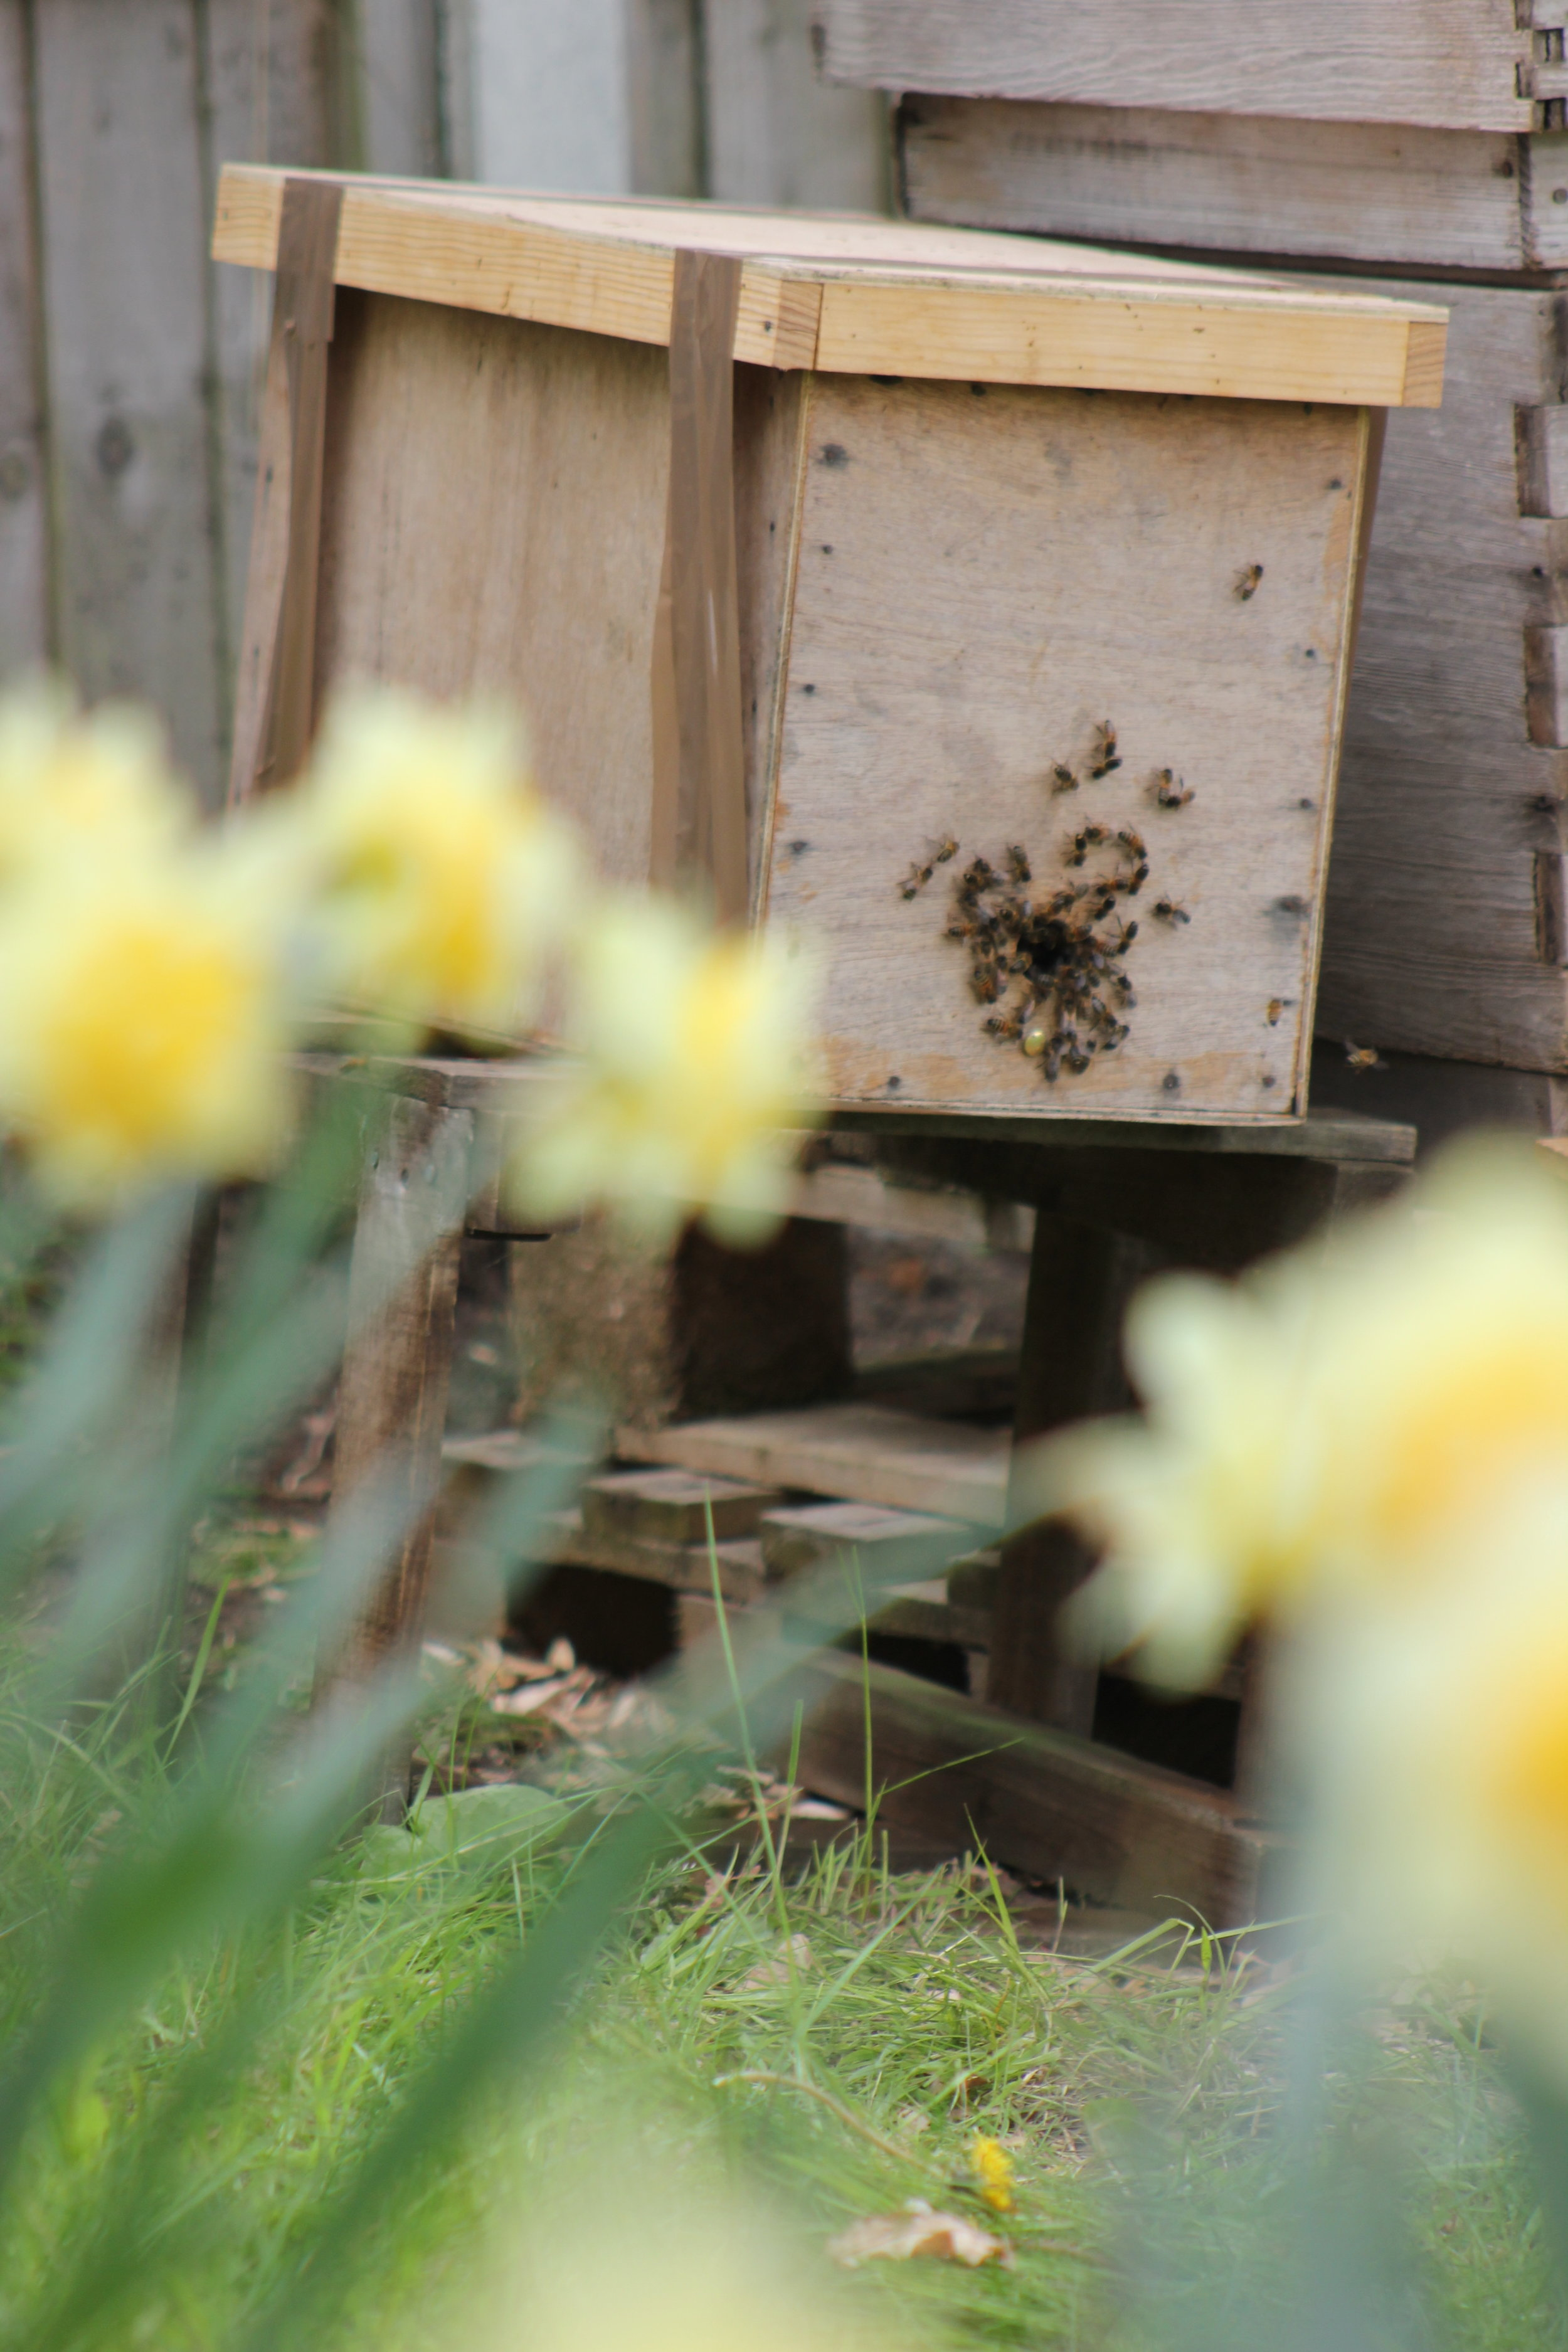 Busy bees moving into their new hive in the meadow